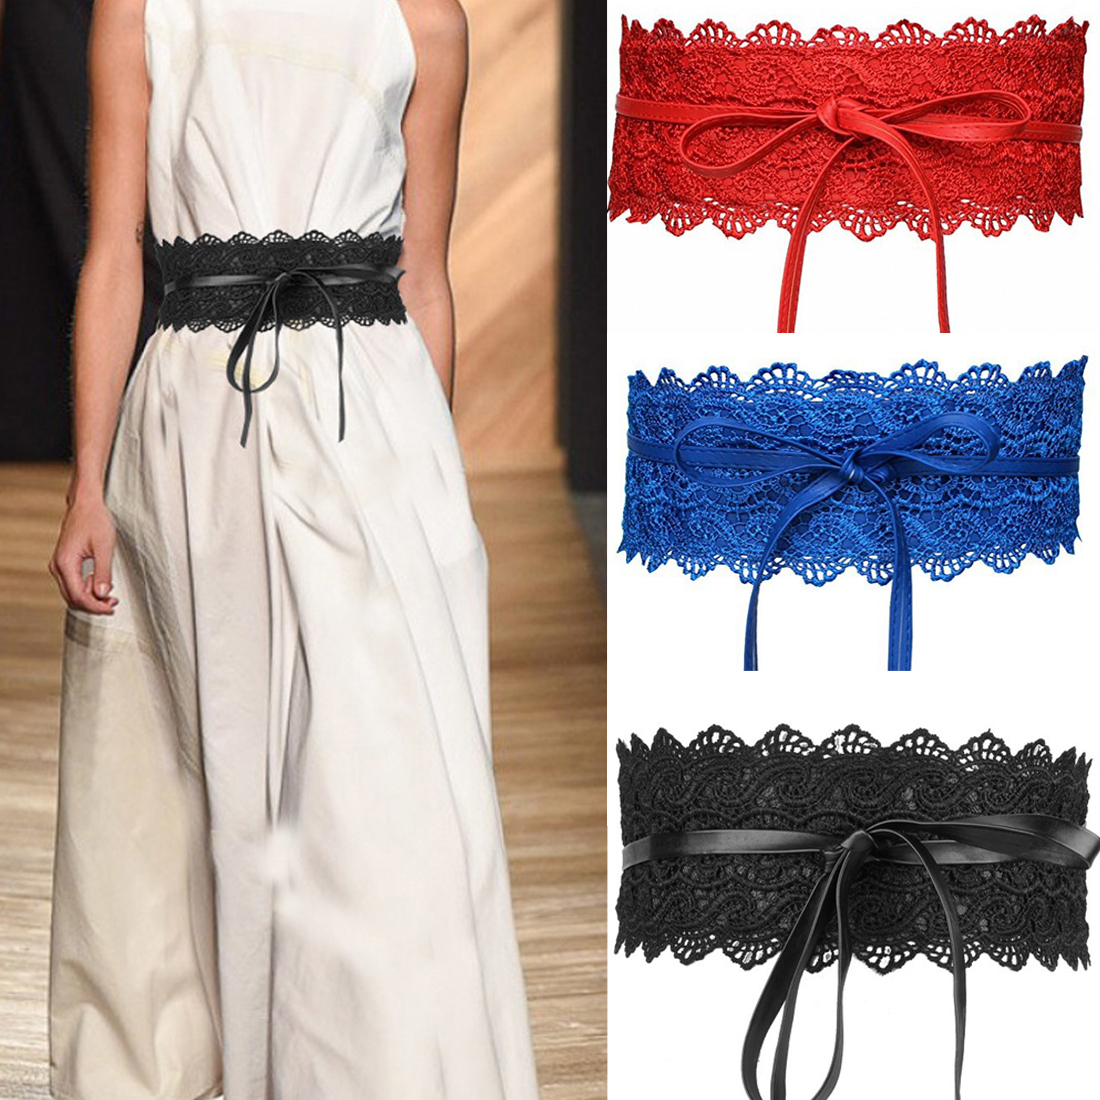 Fashion Waist Cincher Women Dress Bowknot Waist Band Faux Leather Lace Wide Decor Belt Girdle Waist Band Bandage Elegant Belts